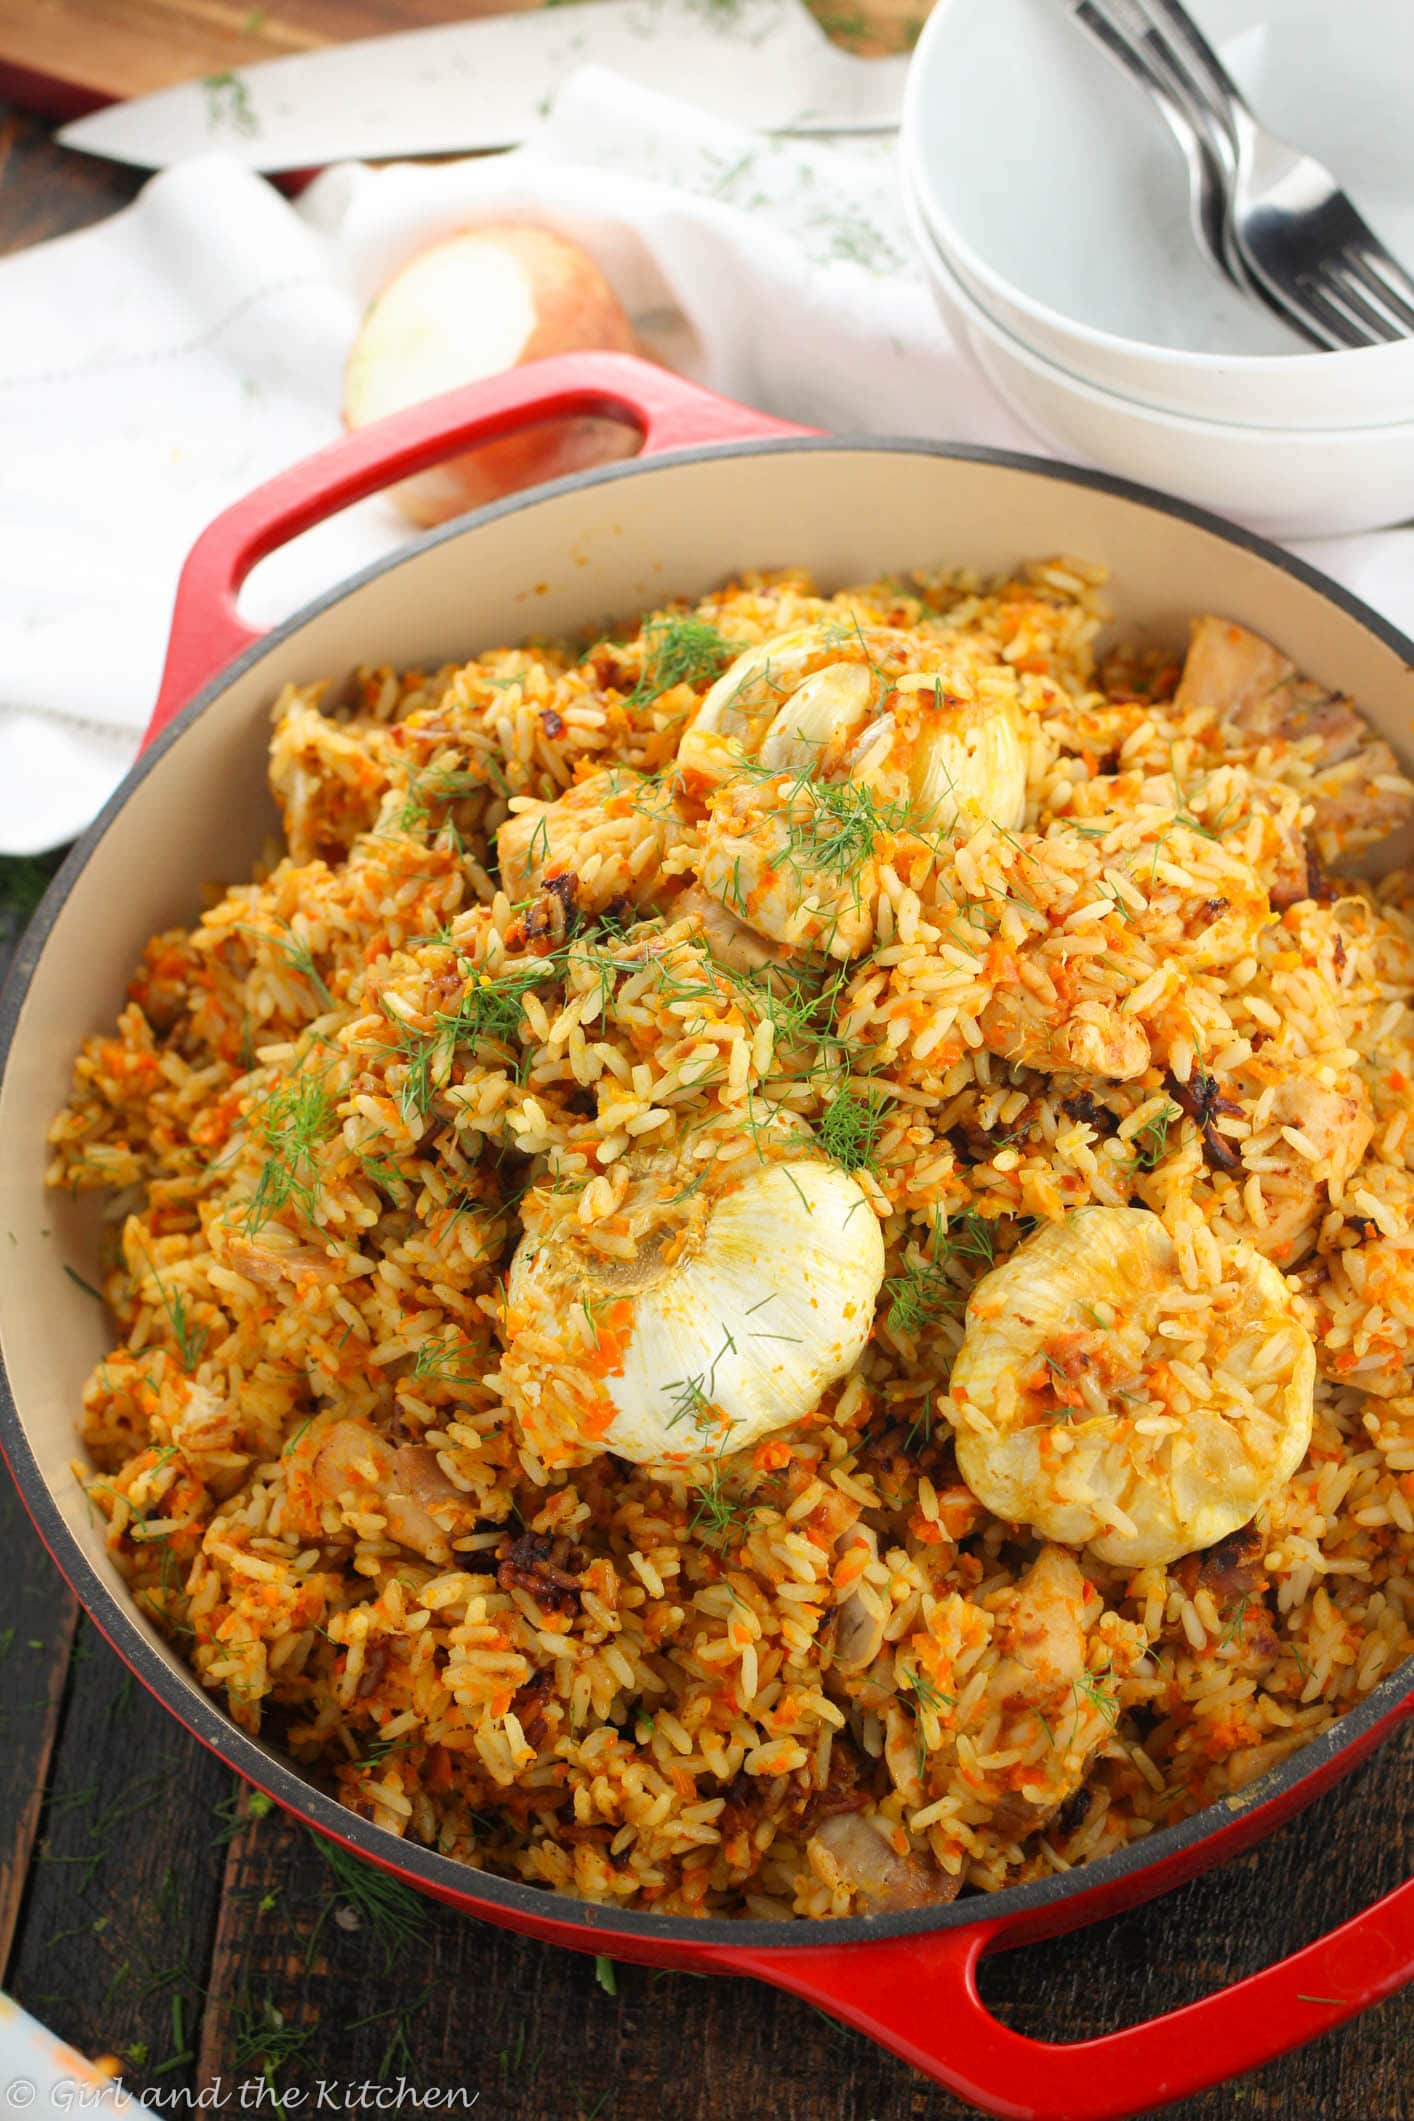 Russian plova one pot chicken and rice recipe girl and the kitchen plov is the ultimate russian comfort food its a one pot chicken and rice recipe forumfinder Gallery